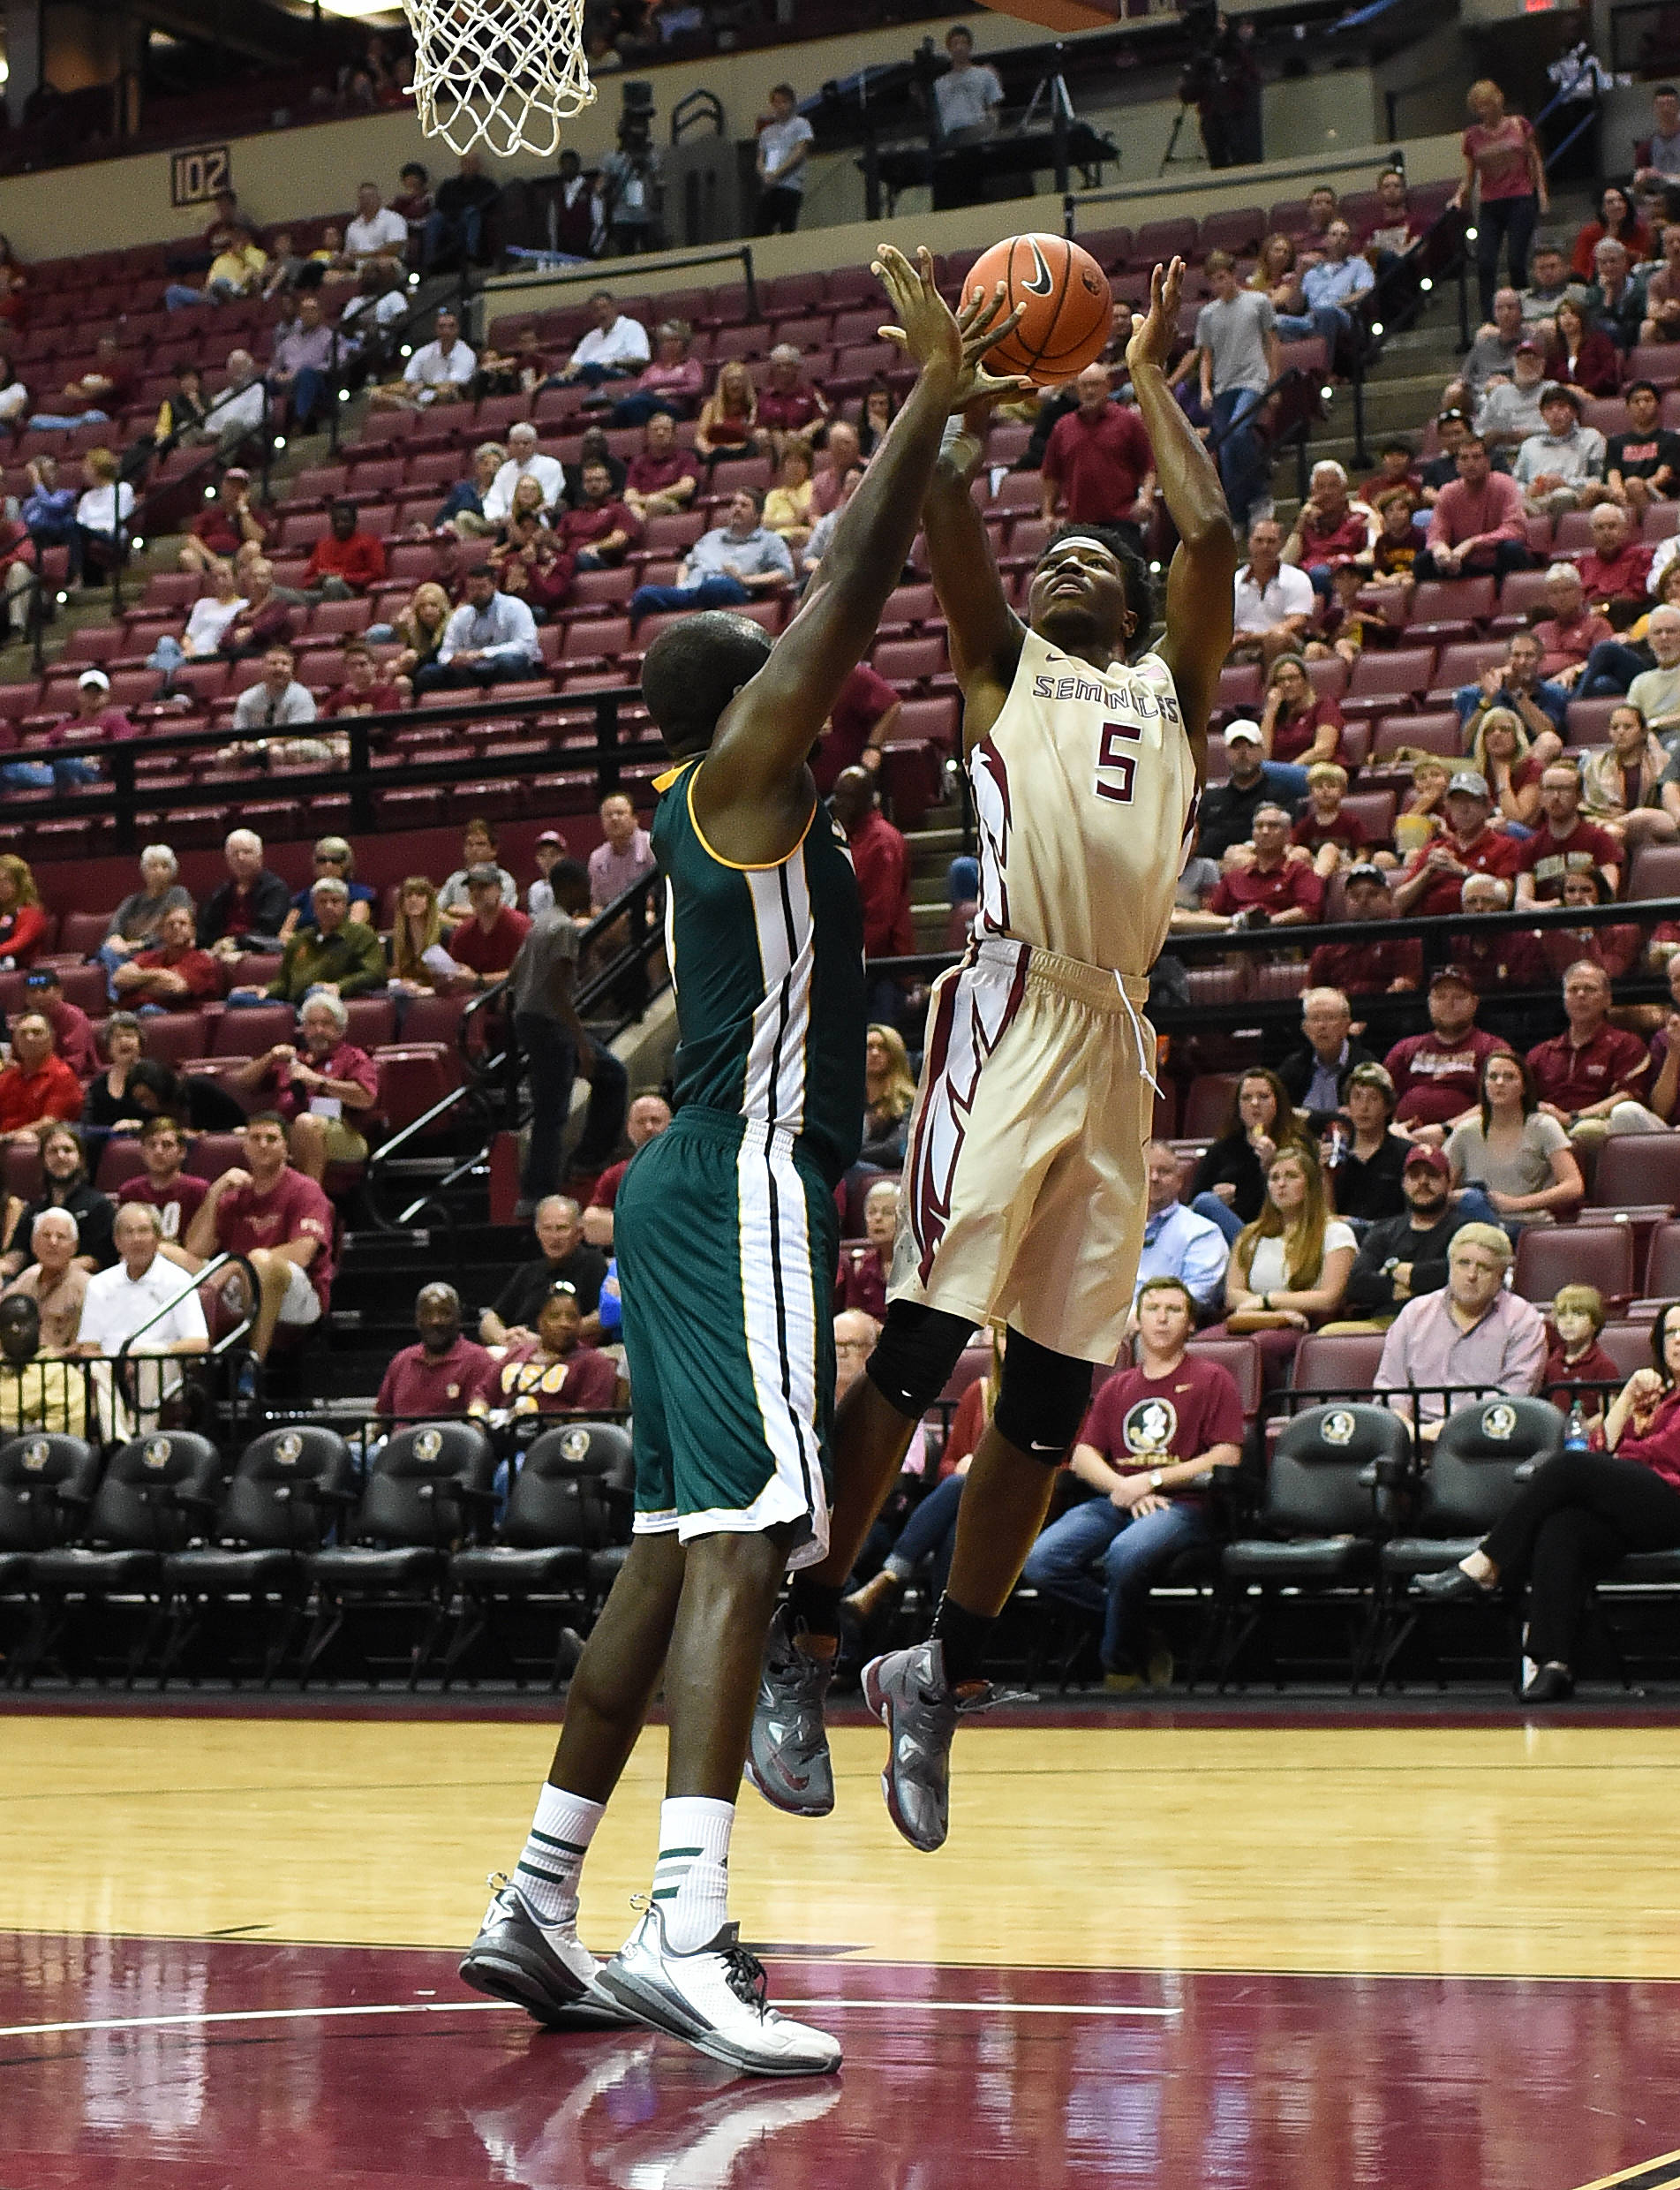 Florida State vs. Southeastern Louisiana